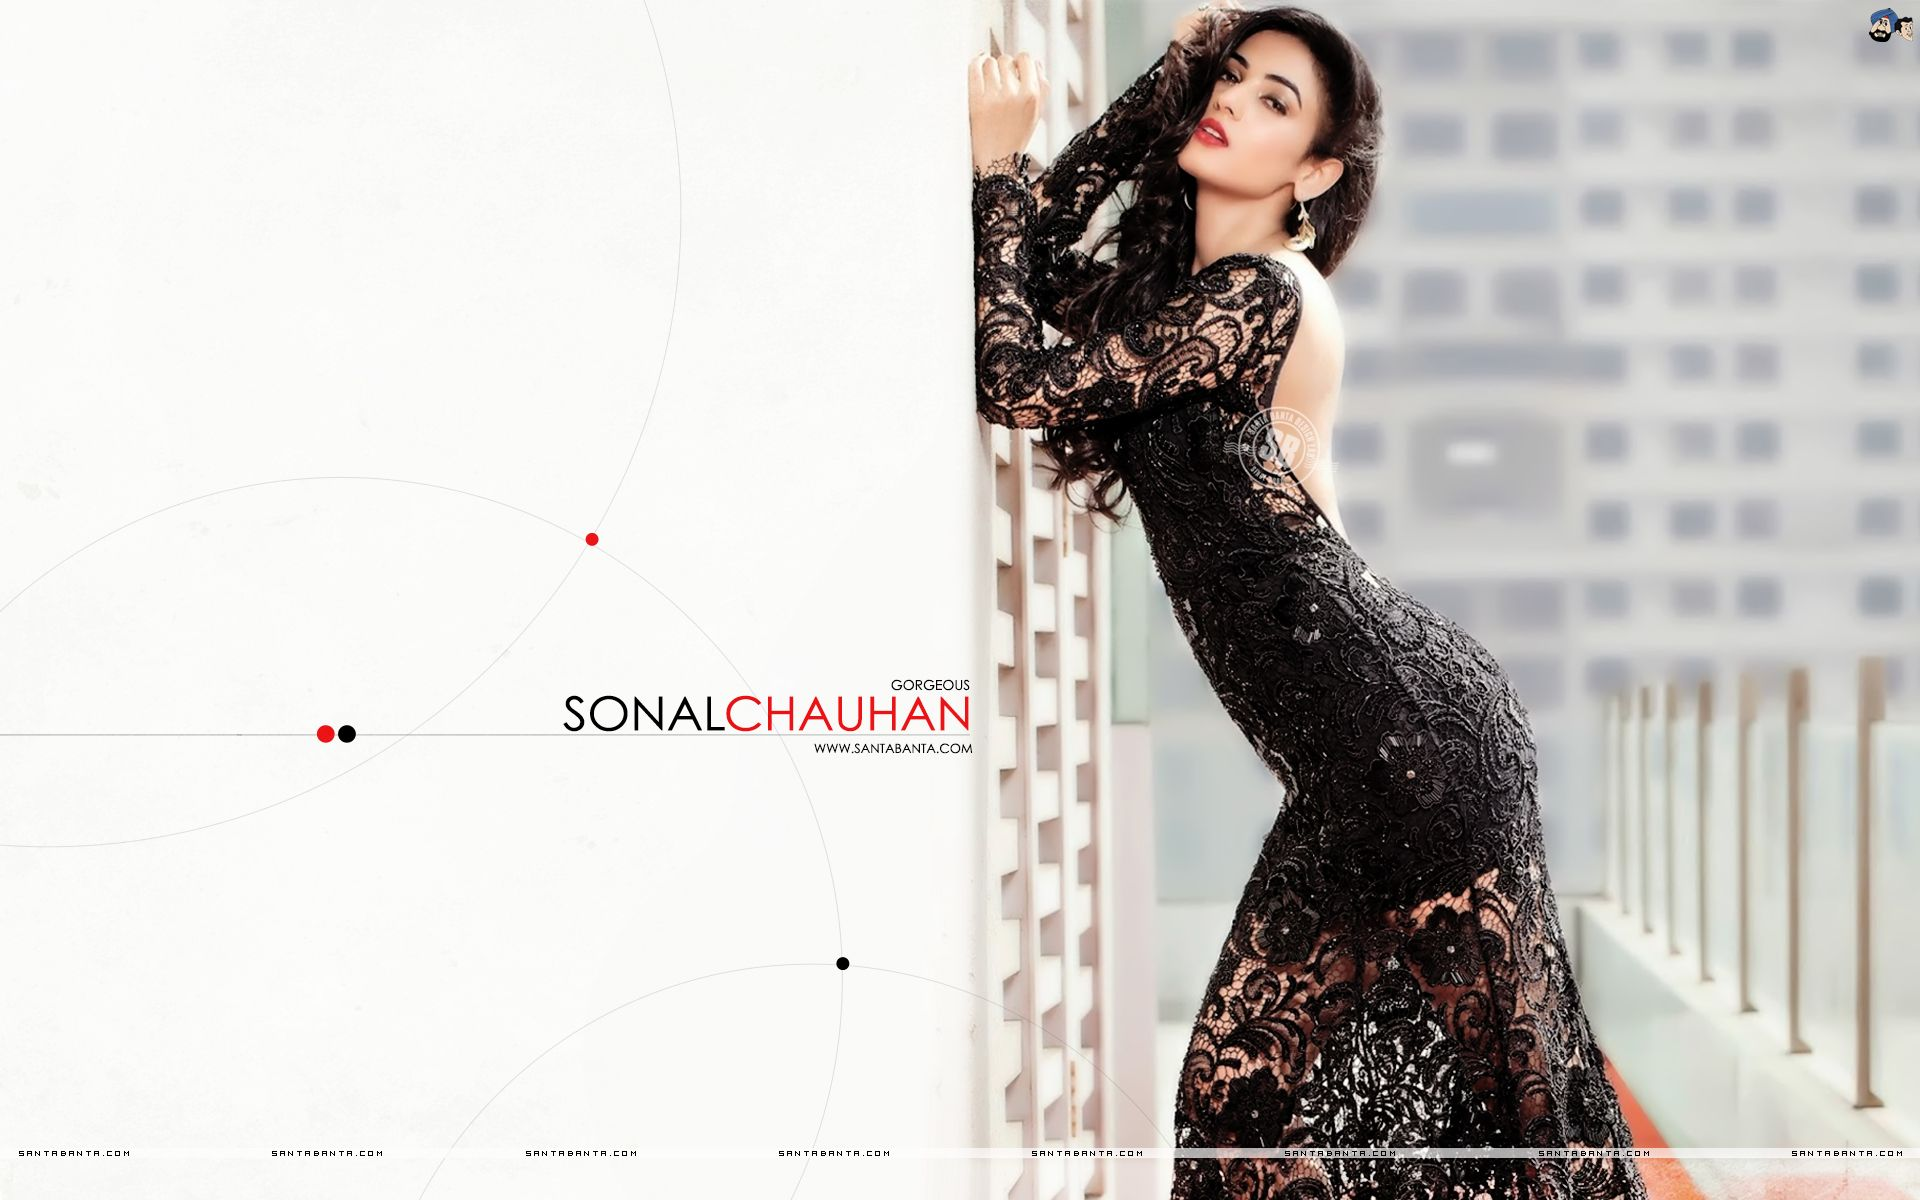 sonal chauhan hot hd wallpaper #13 | amrita rao | pinterest | hd